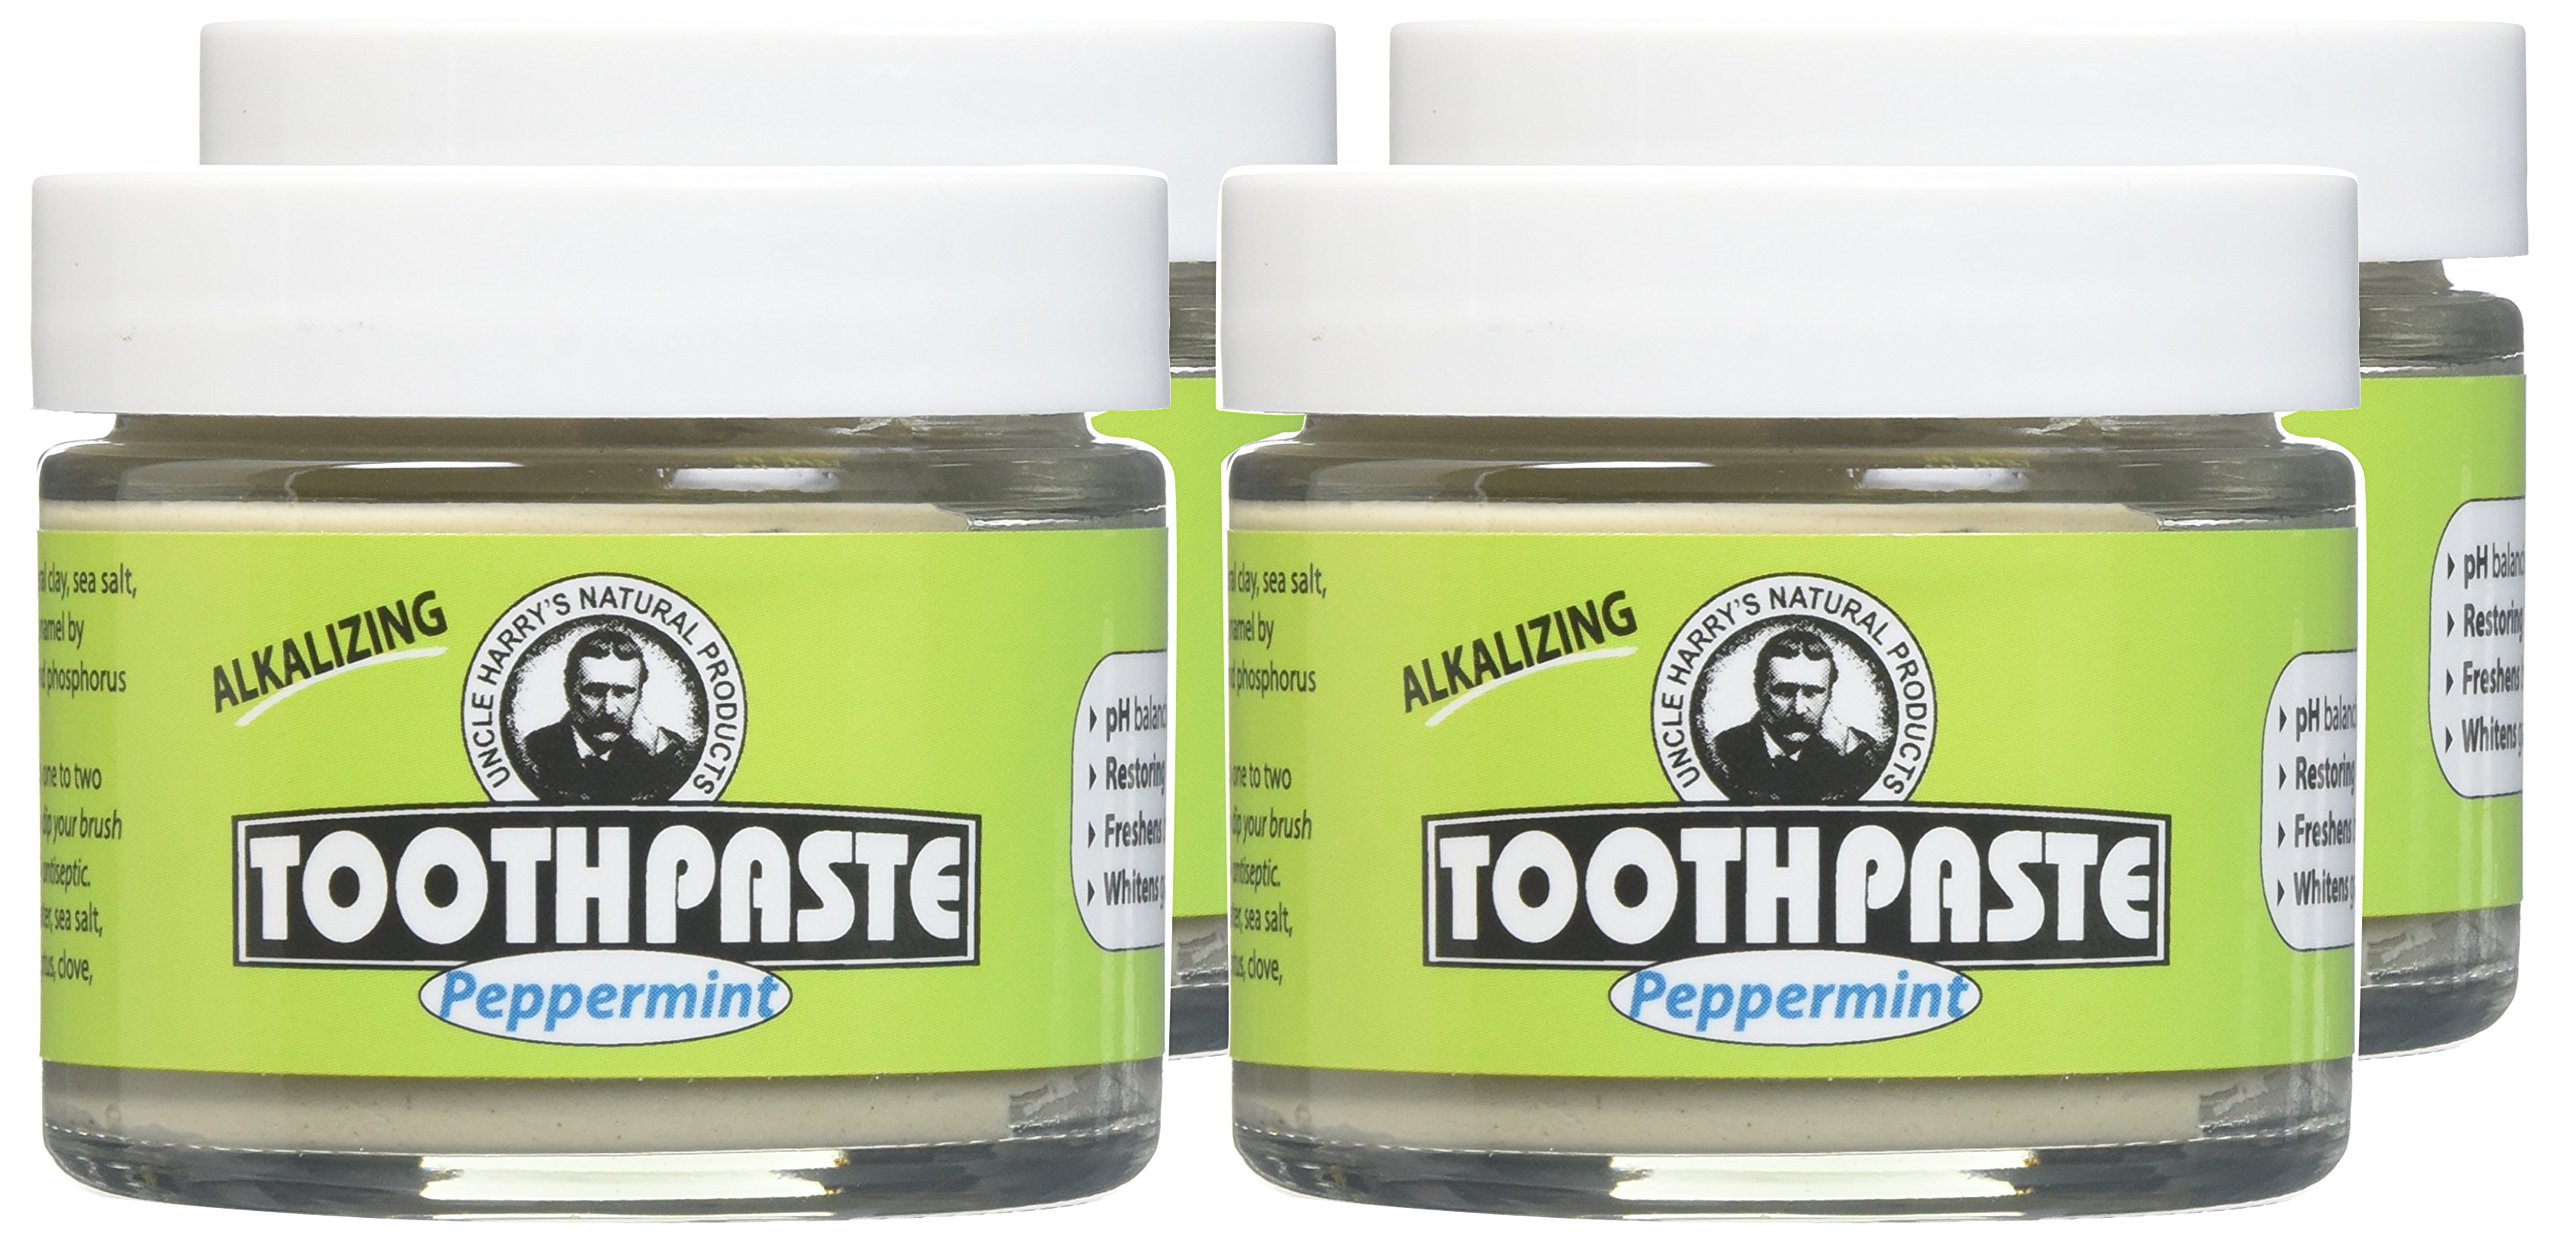 Uncle Harry's Fluoride Free Toothpaste - Peppermint (3 oz Glass jar) … (4) by Uncle Harry's Natural Products (Image #2)